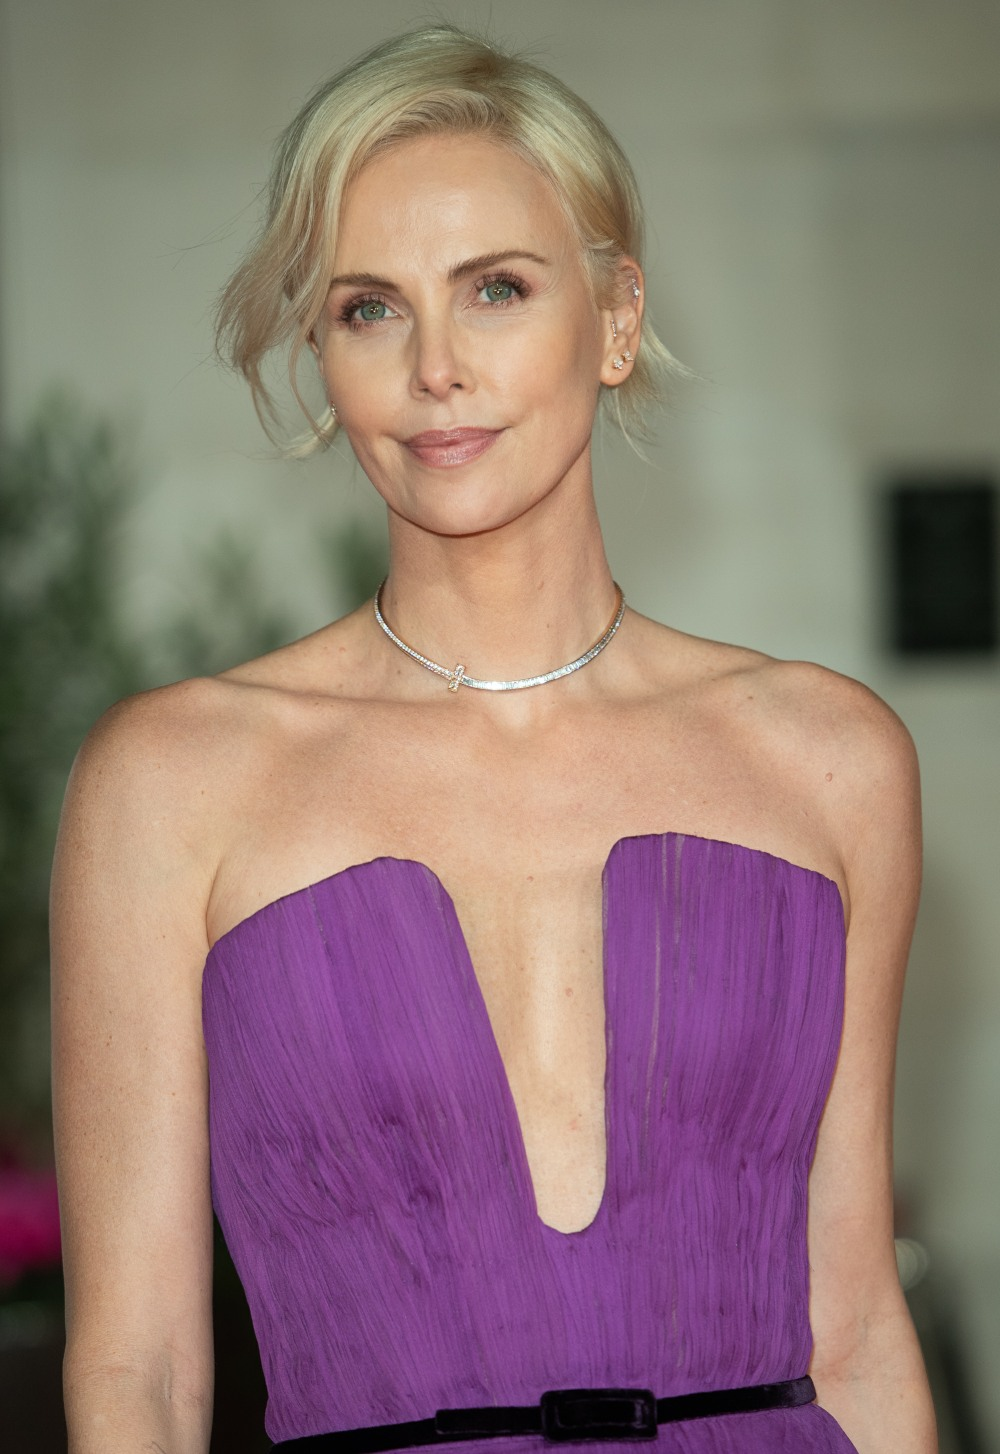 Charlize Theron attends the 73rd BAFTAS After Party at Grosvenor House, London, England, UK on Sunday 2 February, 2020.  Picture by Justin Ng/Retna/Avalon